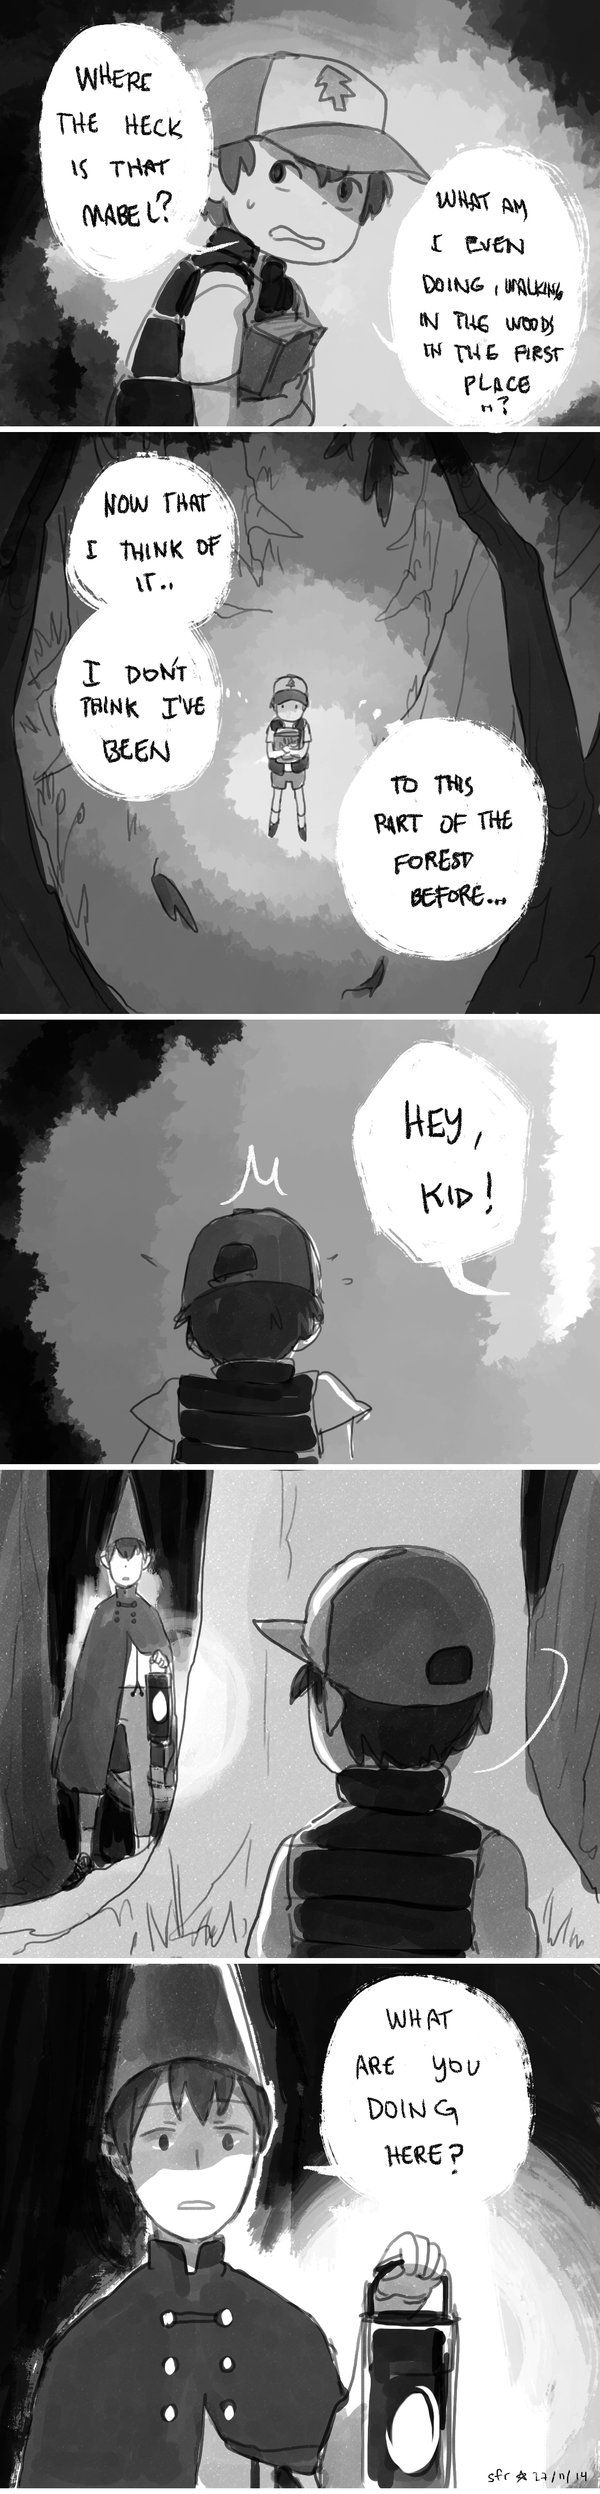 Over the Garden Wall Au - Garden Falls Chapter 1 宇宙艦隊RAMB -- EVERYONE NEEDS TO GO AND READ THIS RIGHT NOW NO FUCKING EXCUSES GO